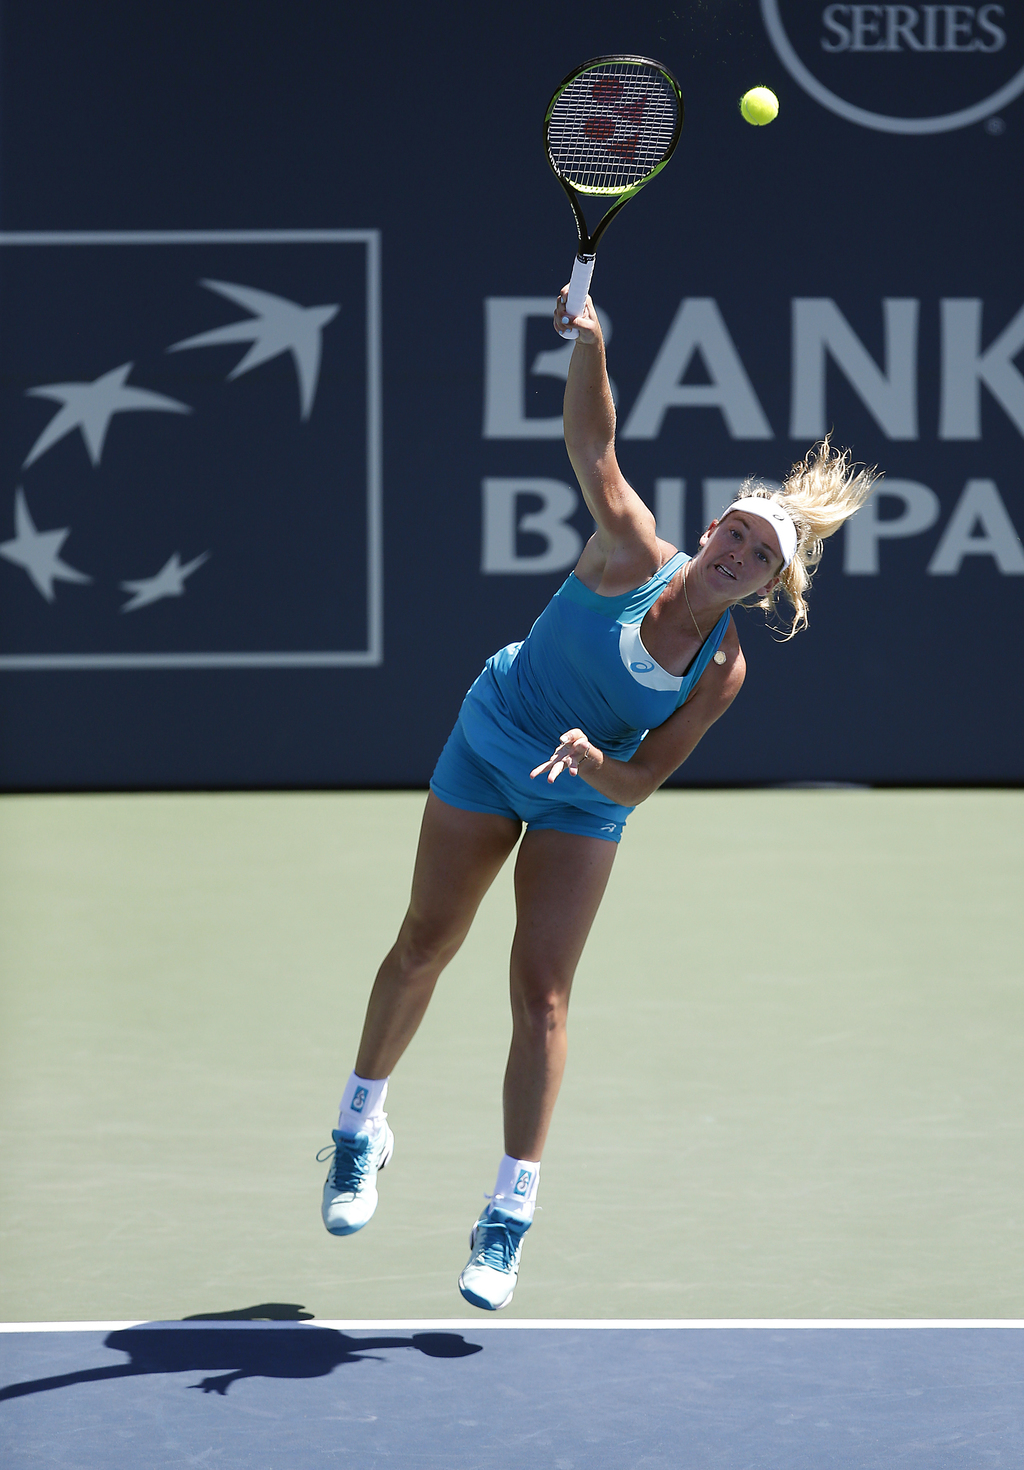 Coco Vandeweghe, of the United States, serves to Madison Keys, of the United States, during the finals of the Bank of the West Classic tennis tourname...